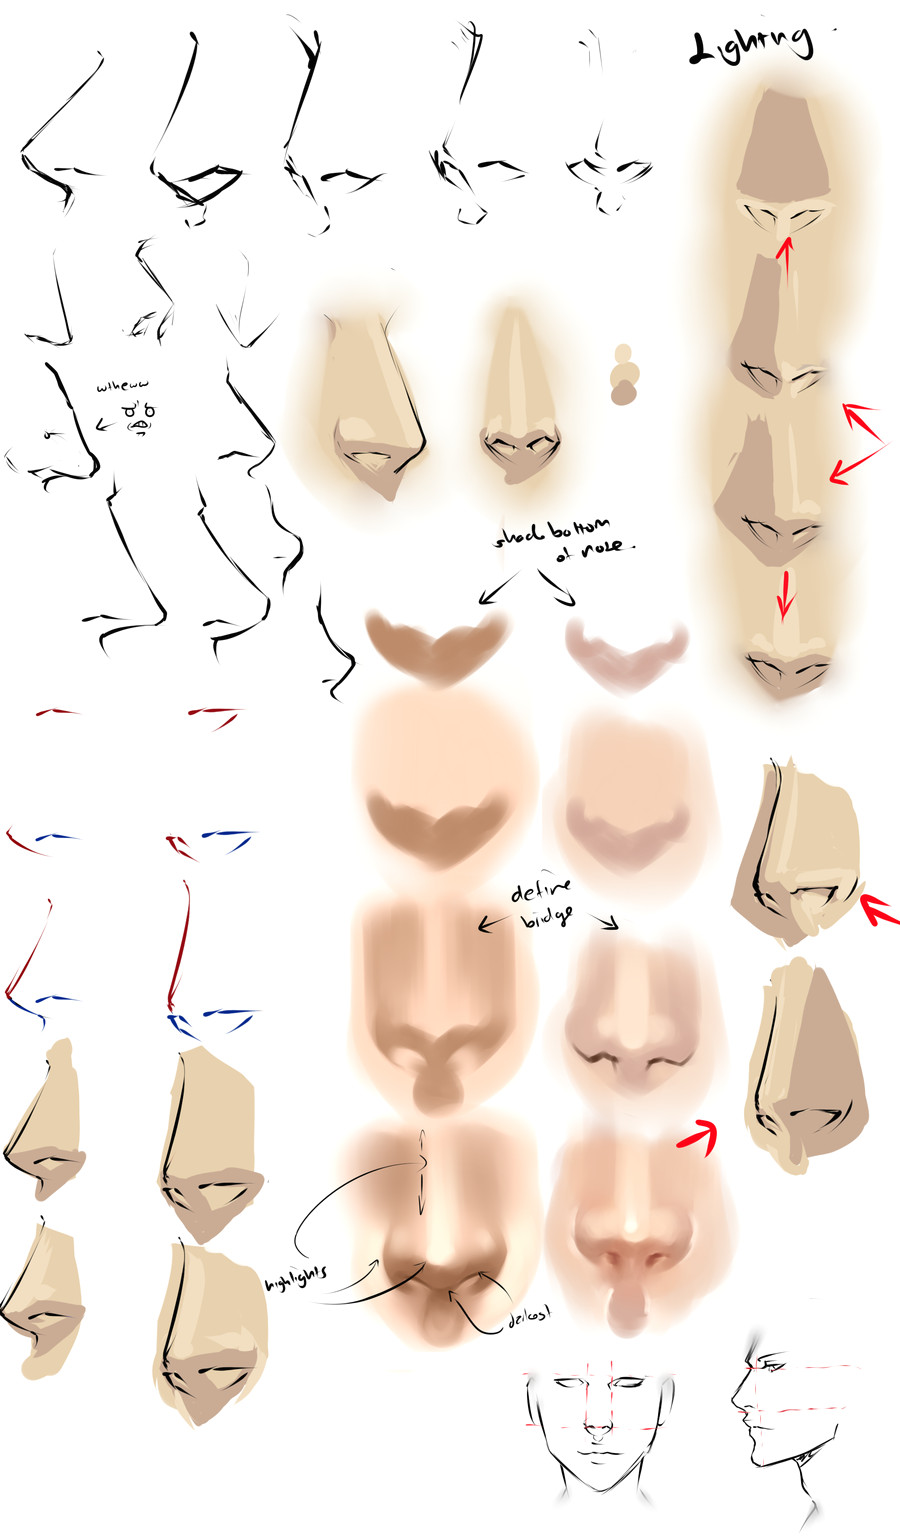 drawing anime noses by moni158 deviantart com art drawing painting tutorial lesson